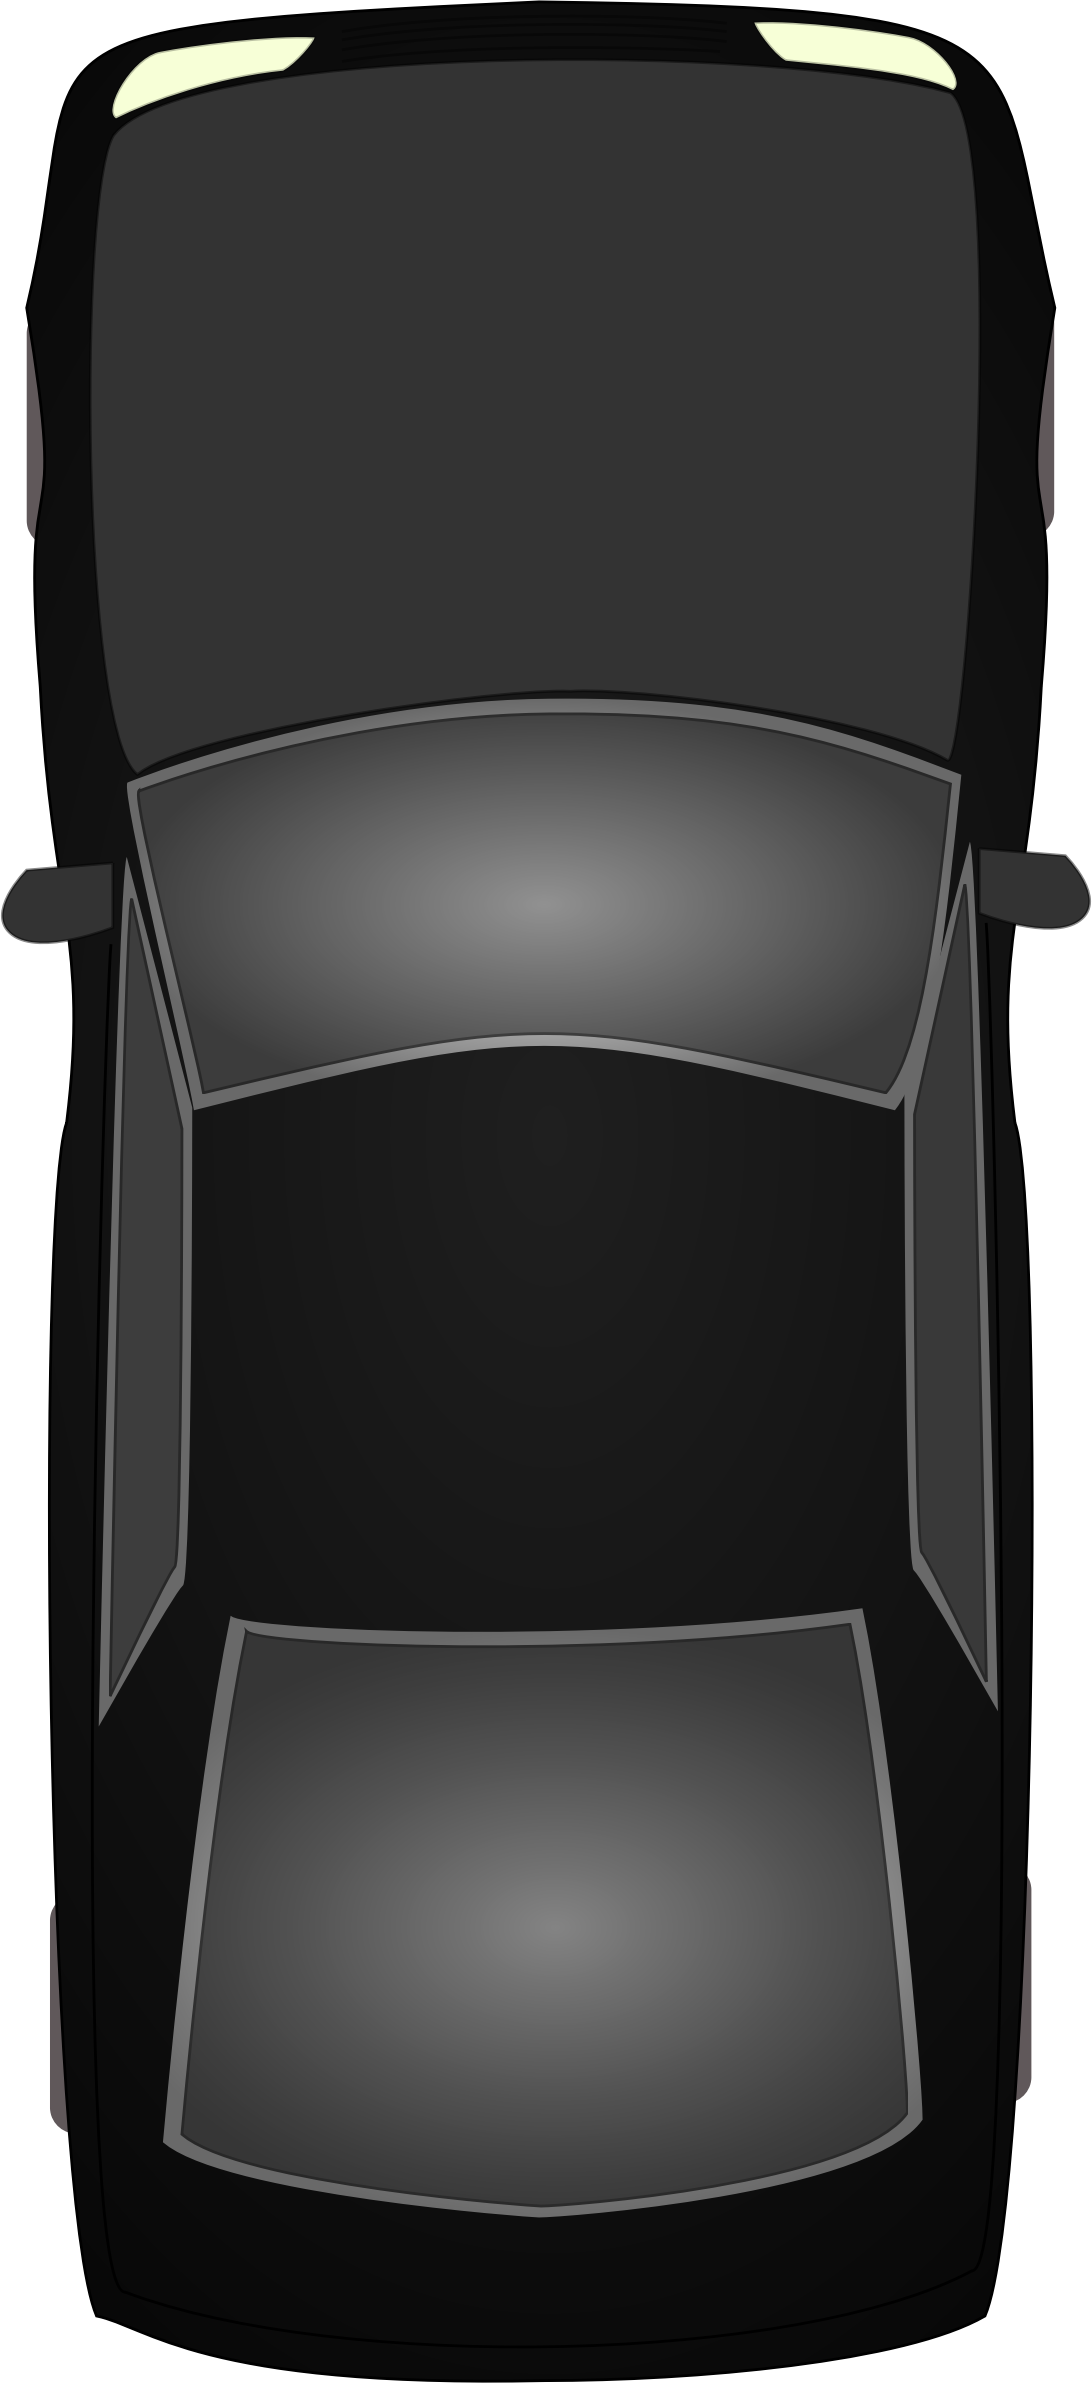 Black car topview by ckhoo